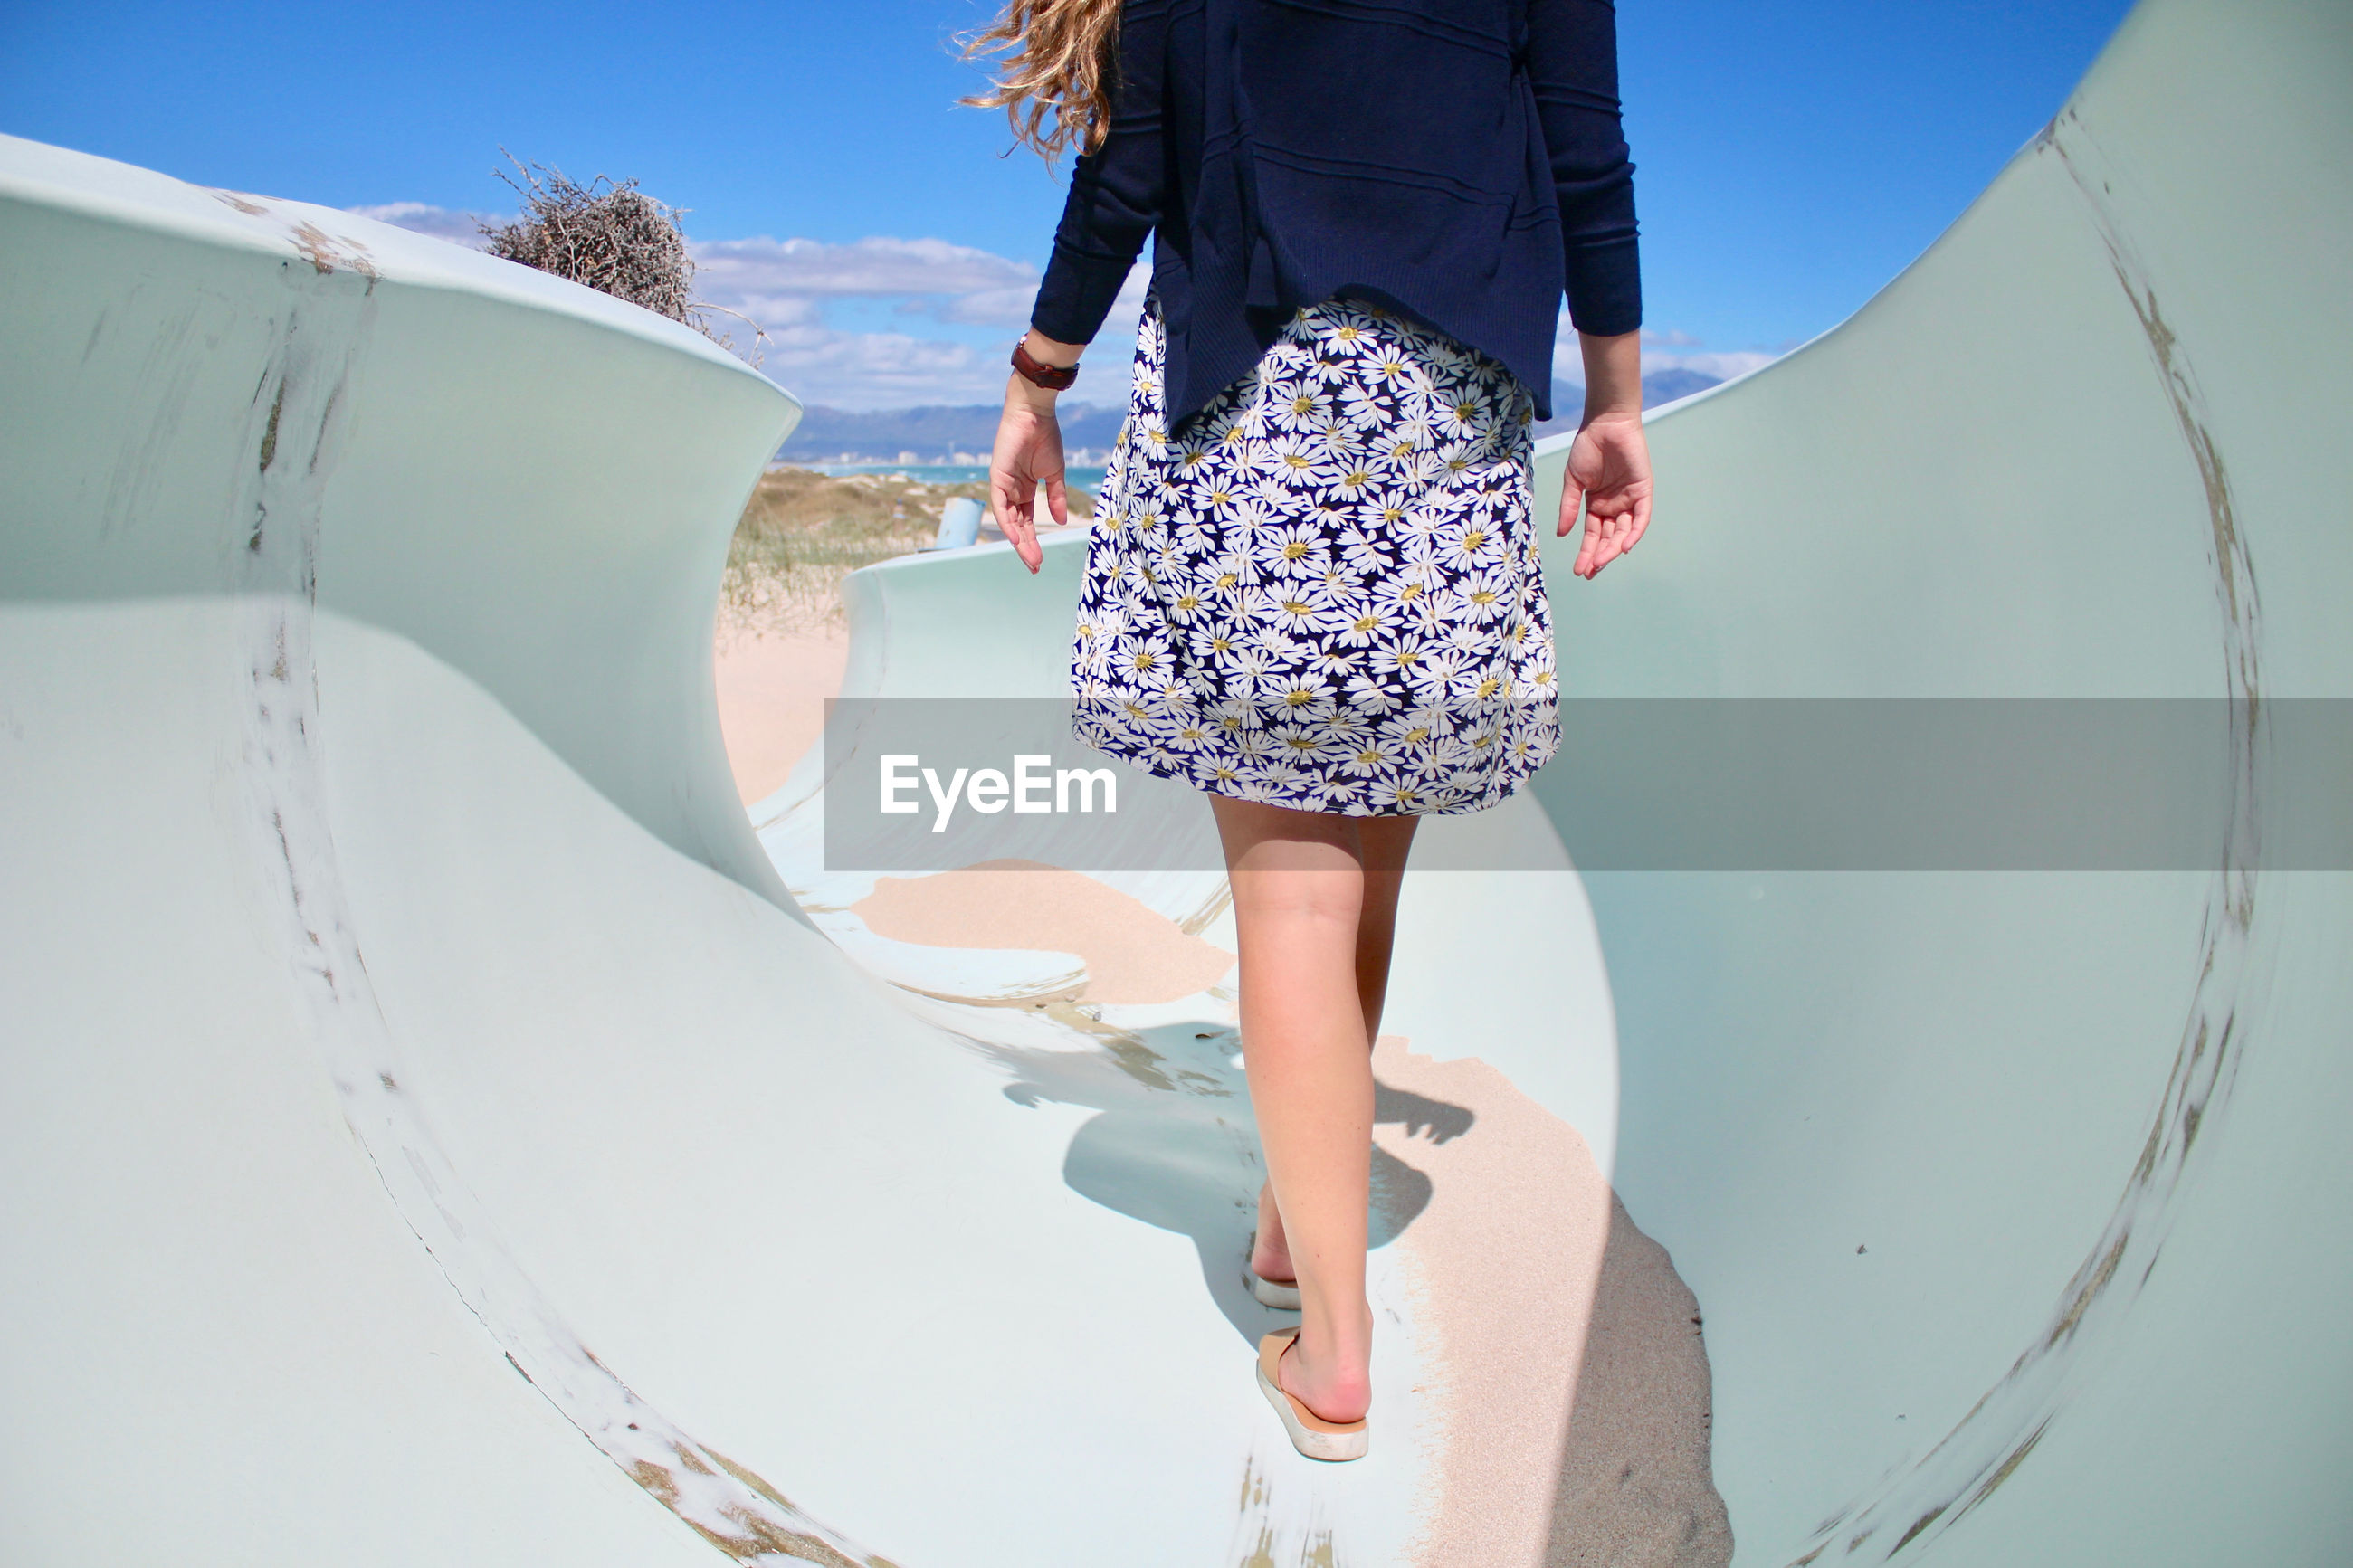 Low section of woman walking on slide